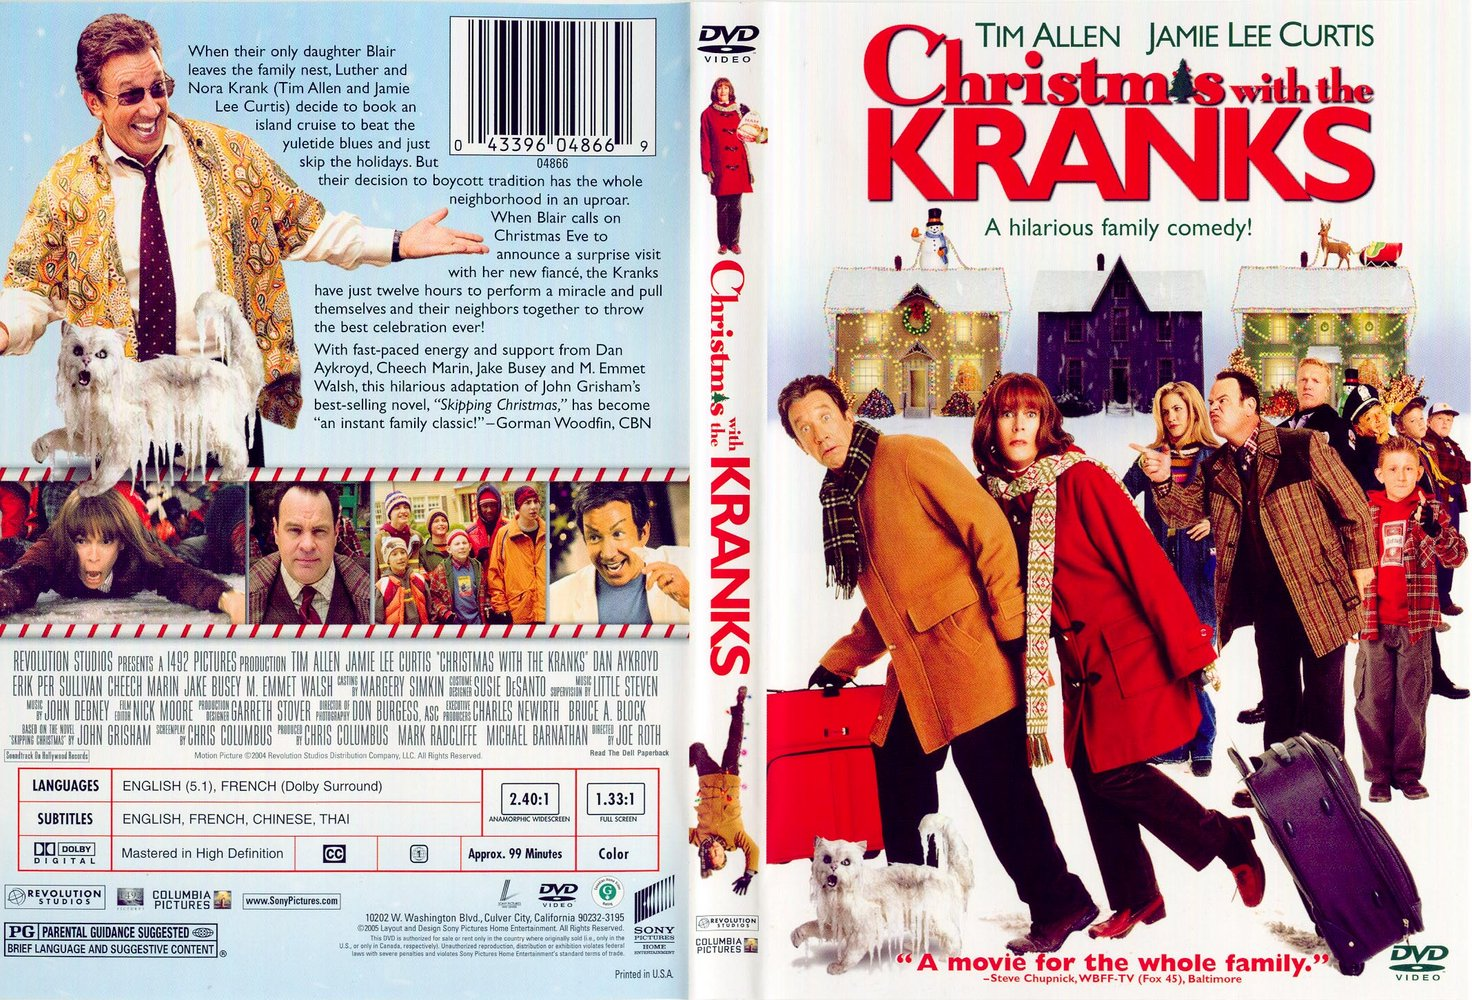 jamie lee curtis kranks - Christmas With The Kranks Trailer